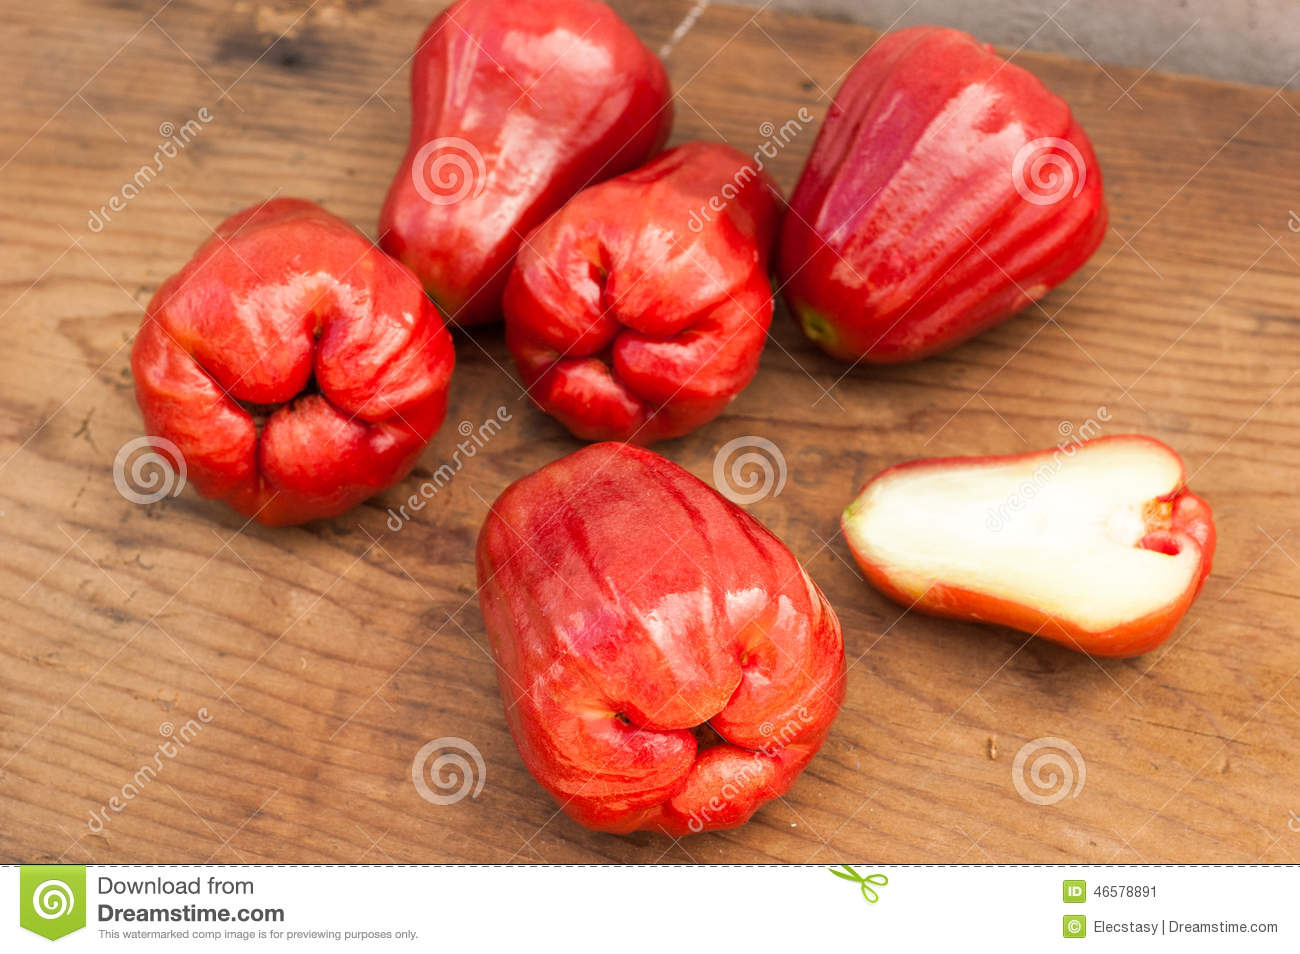 ripe cashew fruit stock images  image, Beautiful flower